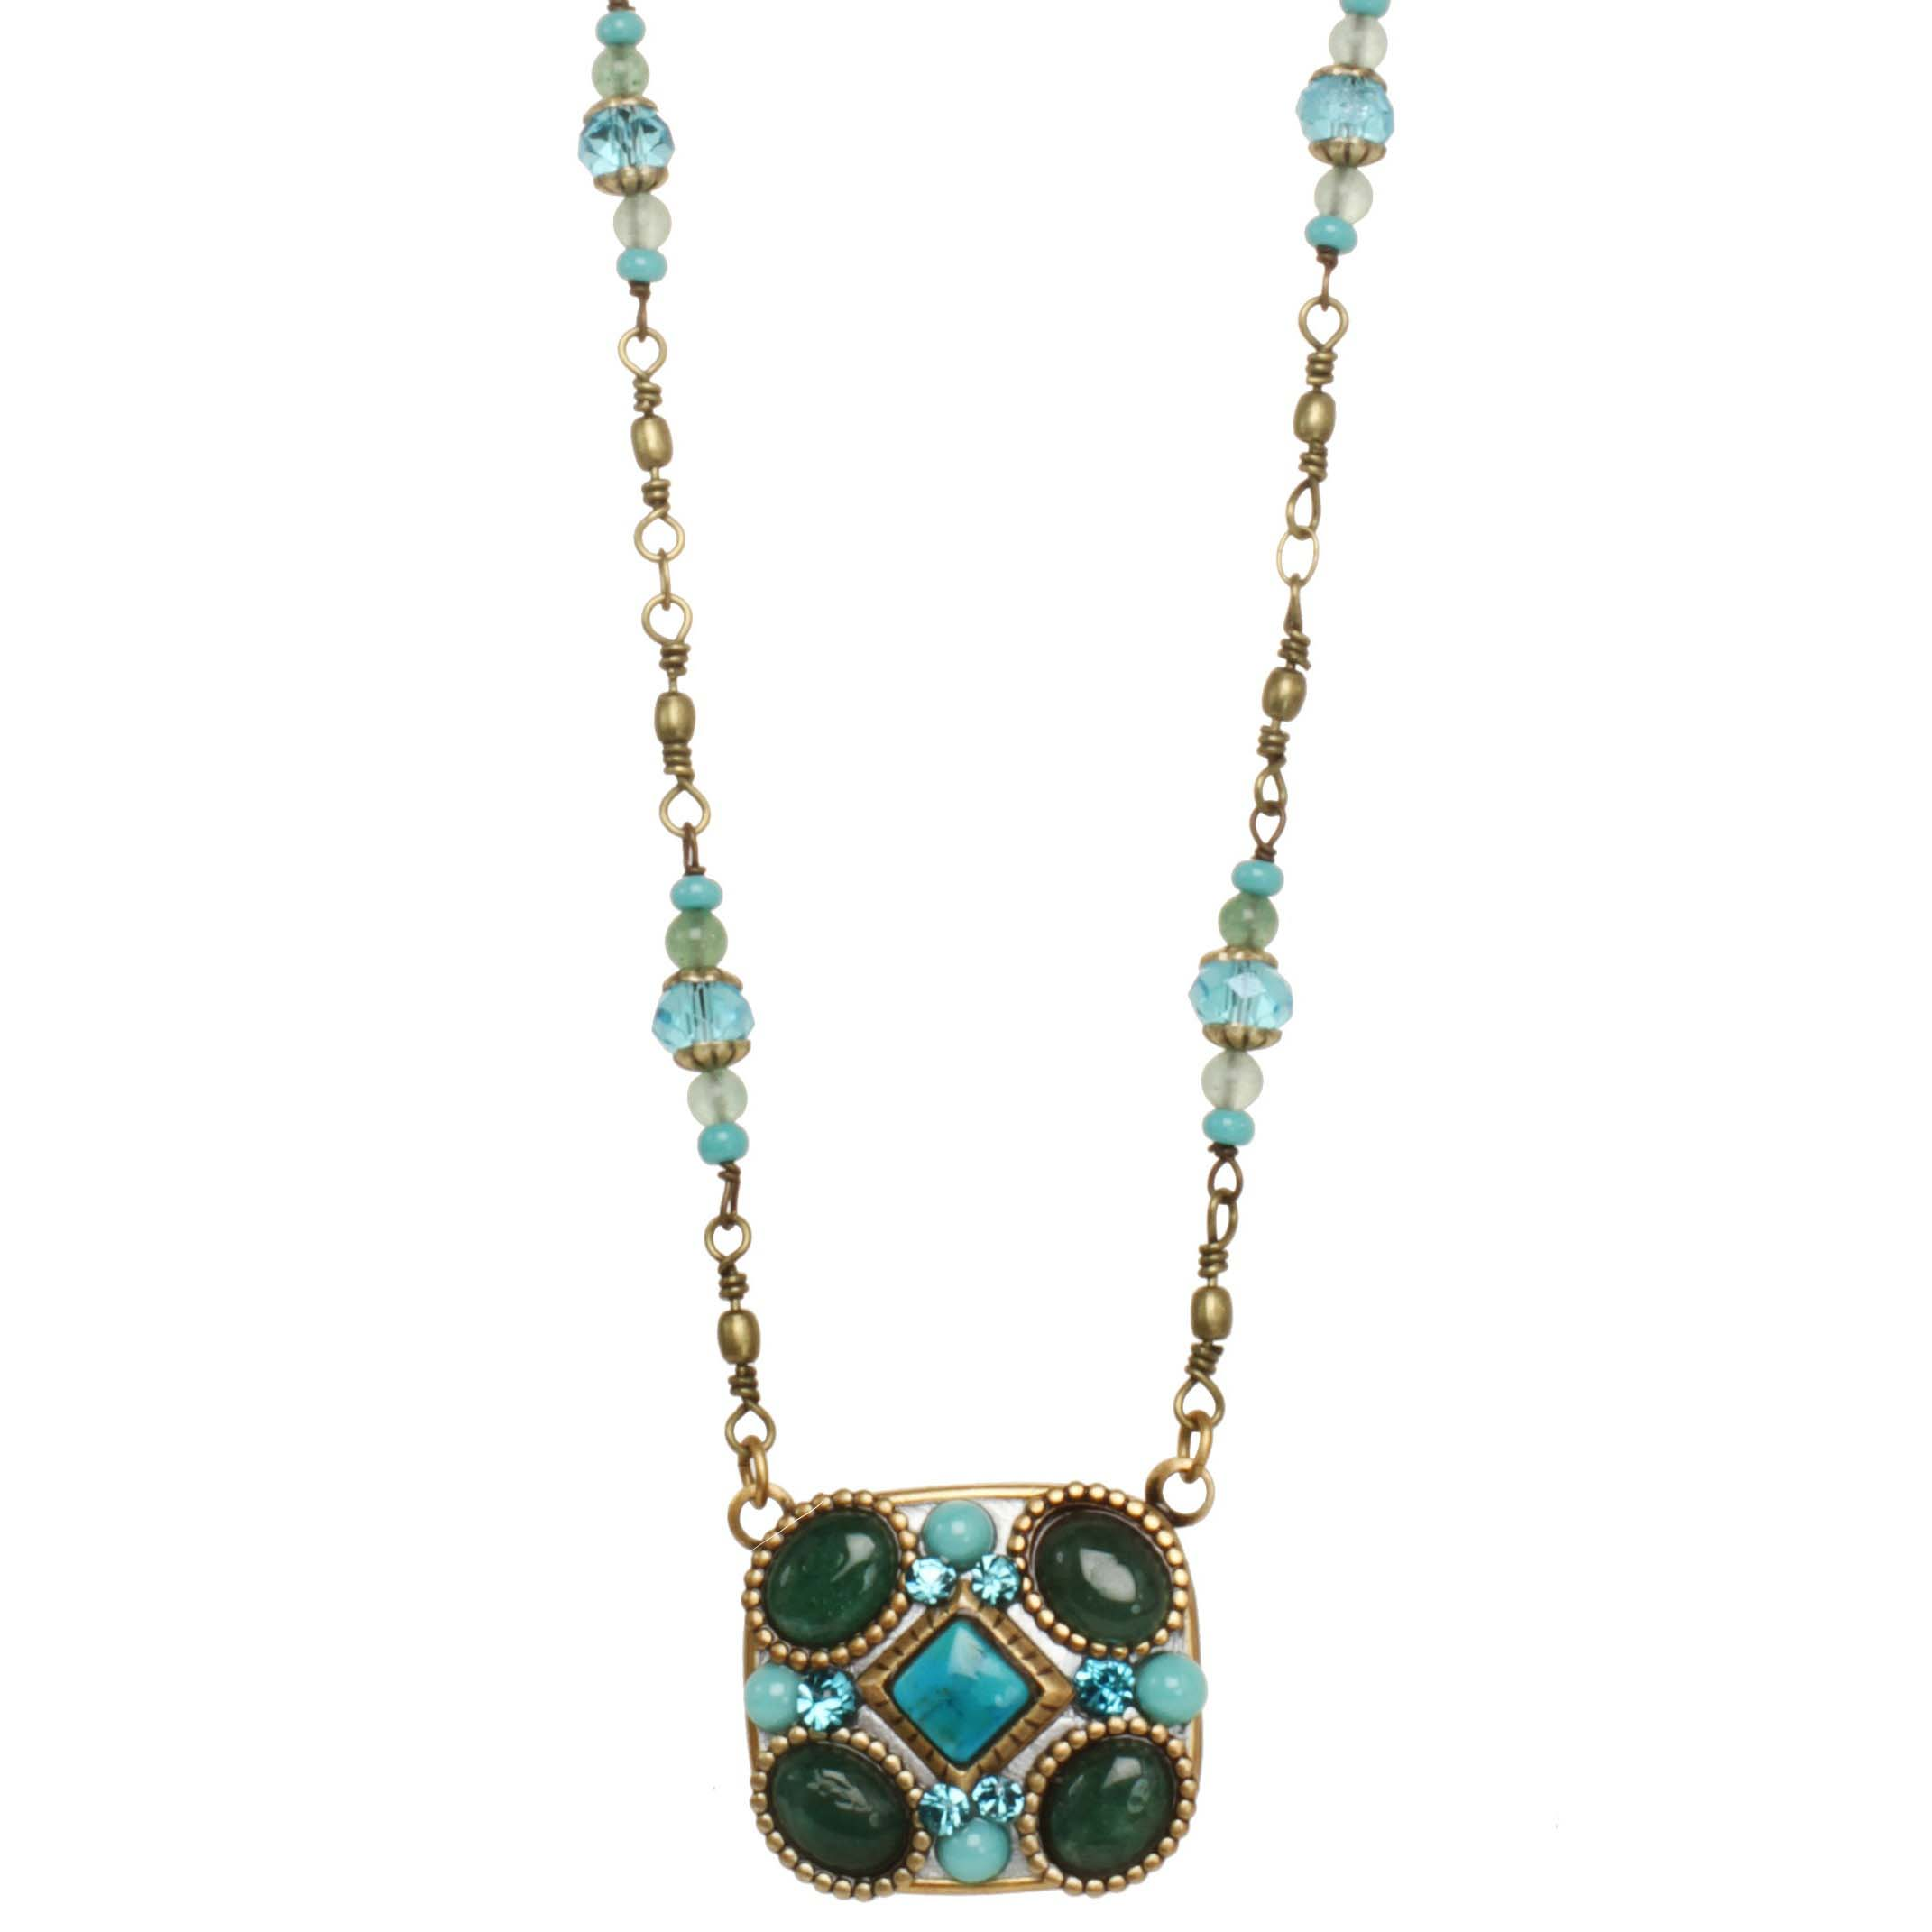 Nile Square Necklace